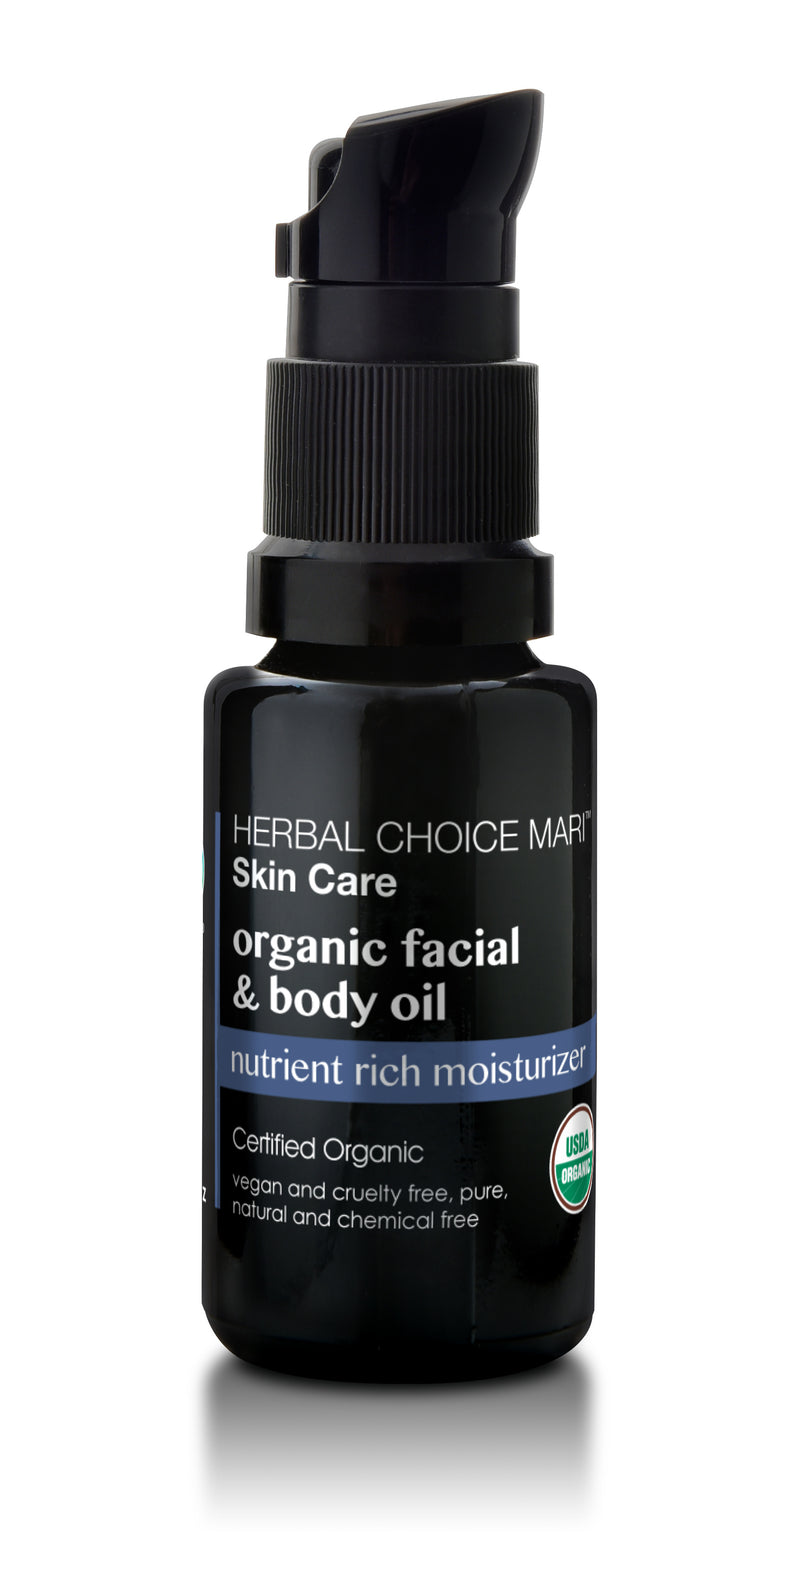 Herbal Choice Mari Organic Facial & Body Oil - Herbal Choice Mari Organic Facial & Body Oil - Herbal Choice Mari Organic Facial & Body Oil